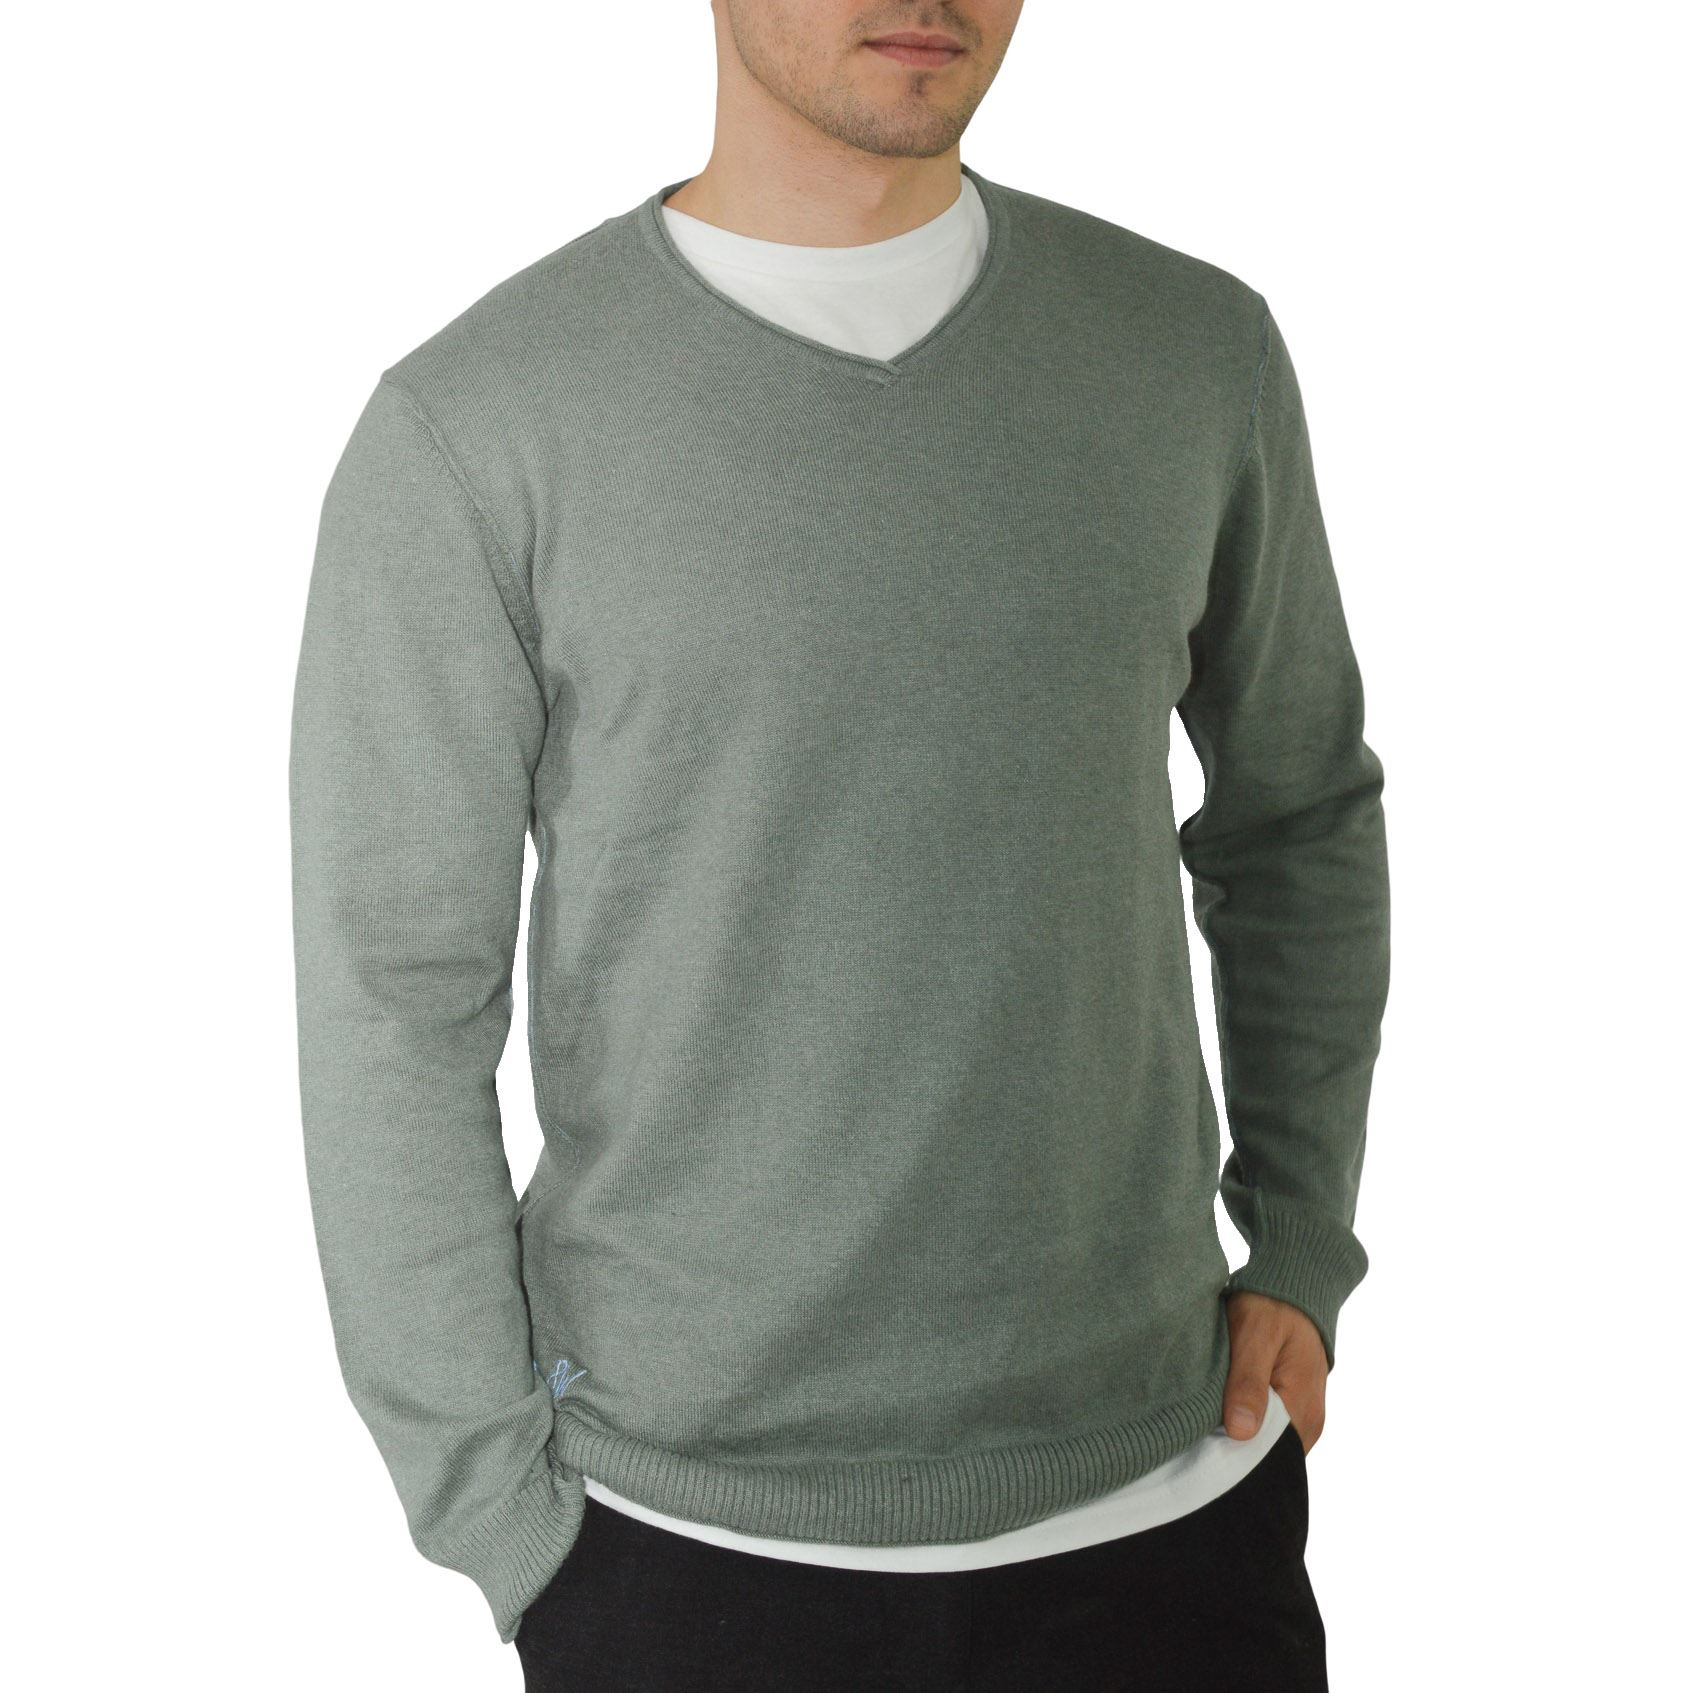 Ex-White-Stuff-Mens-Soft-Cotton-Cashmere-V-Neck-Jumper-Exposed-Seams-Sizes-S-2XL 縮圖 13